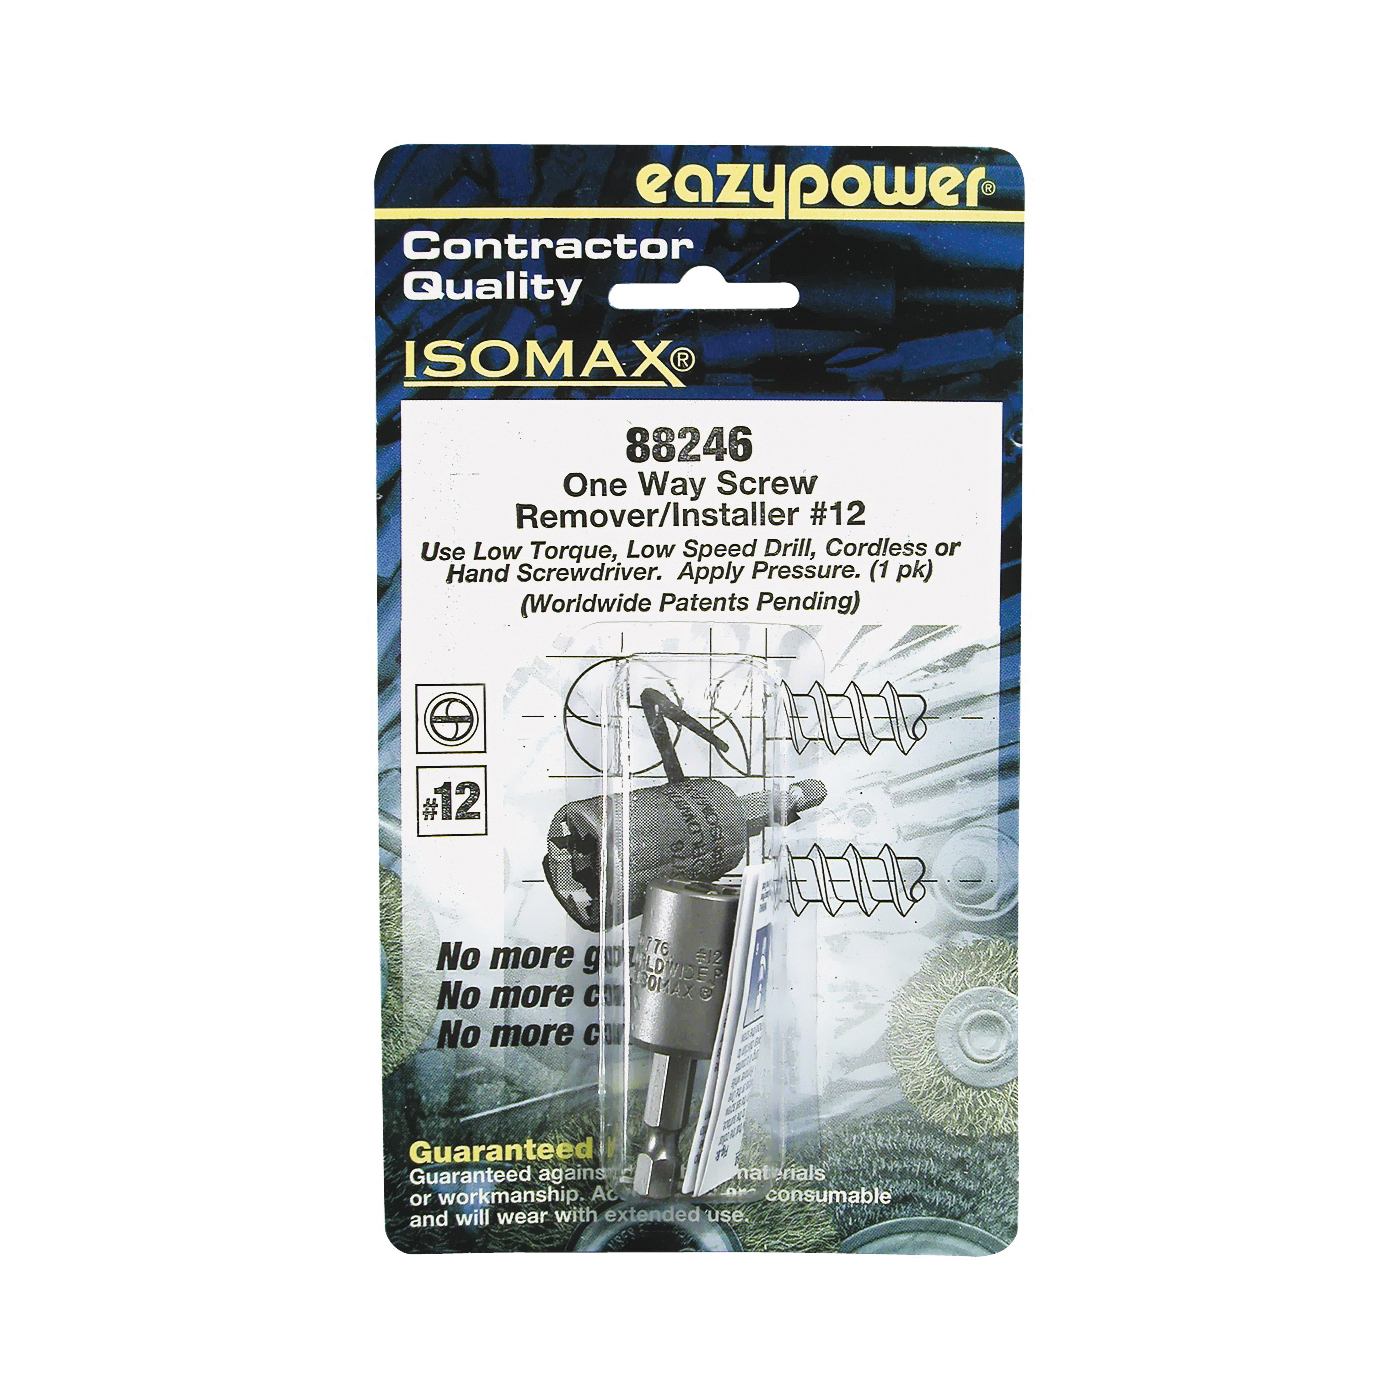 Picture of EAZYPOWER 88246 One Way Screw Remover, #12 Bolt/Screw, HSS